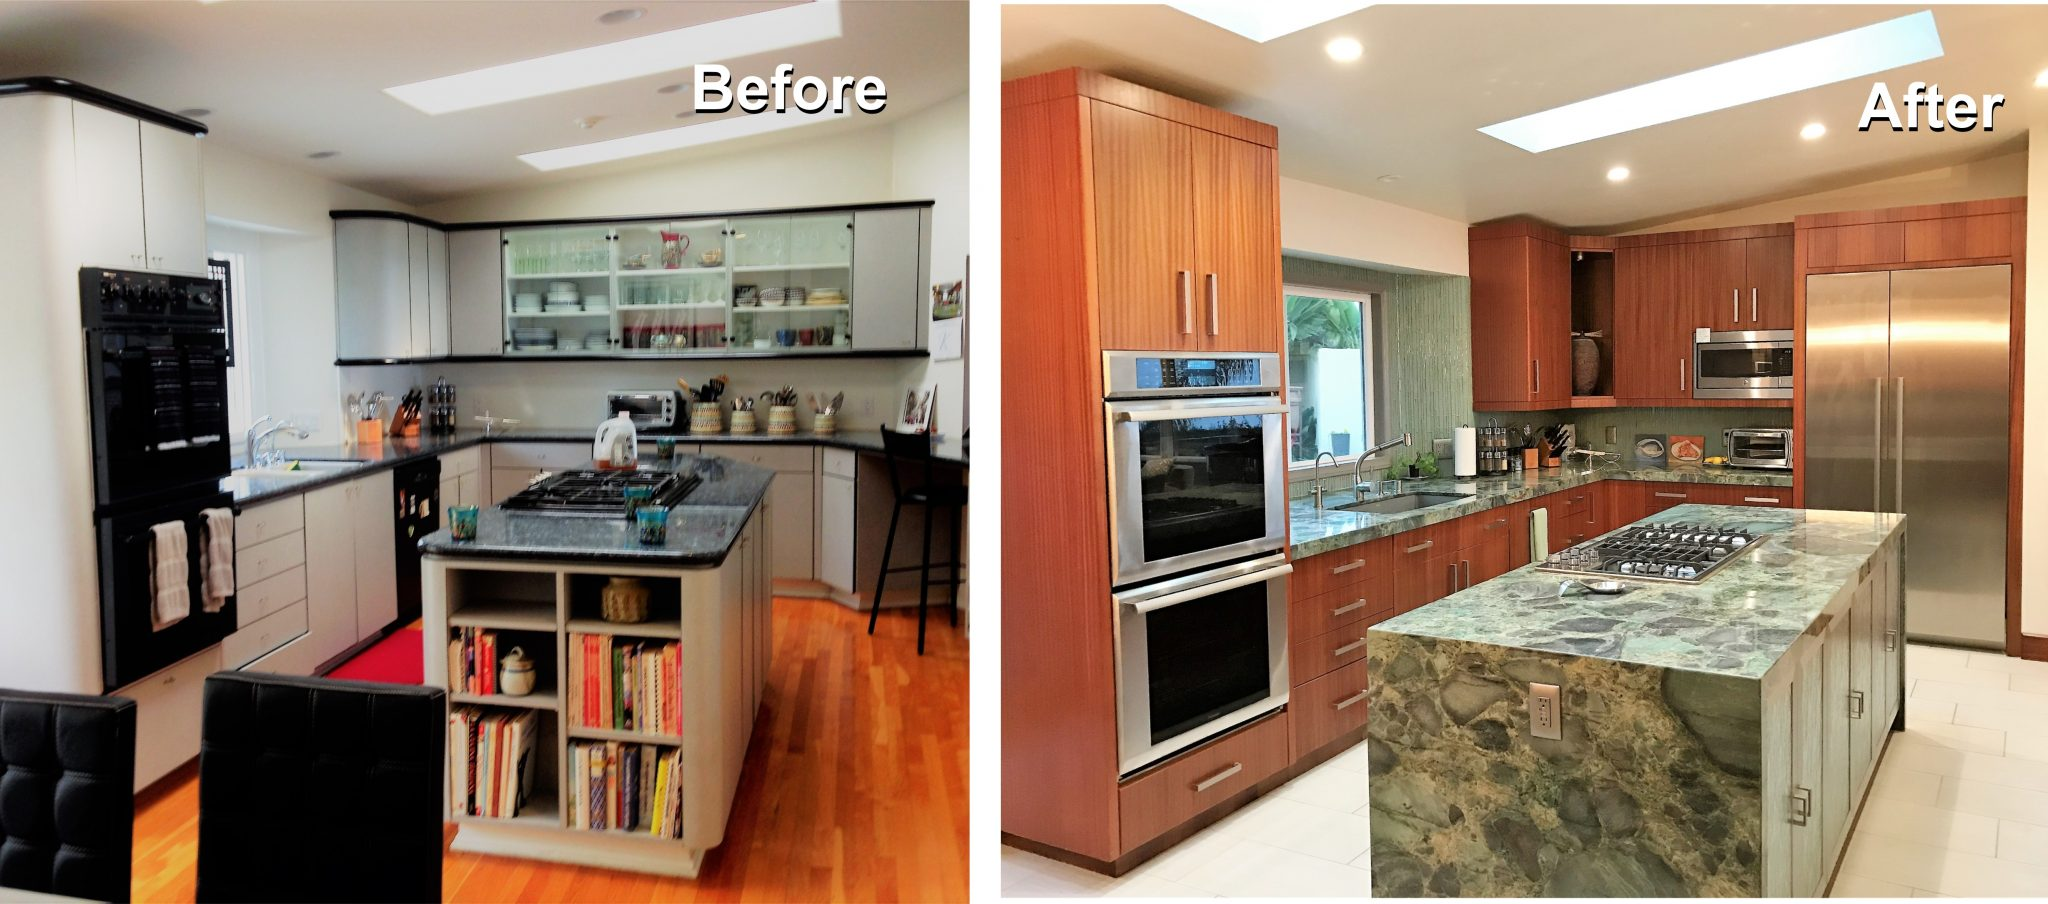 San Diego Interior Designer and Color Consultant   Anna Rodé Designs   Before and After Kitchen Remodel